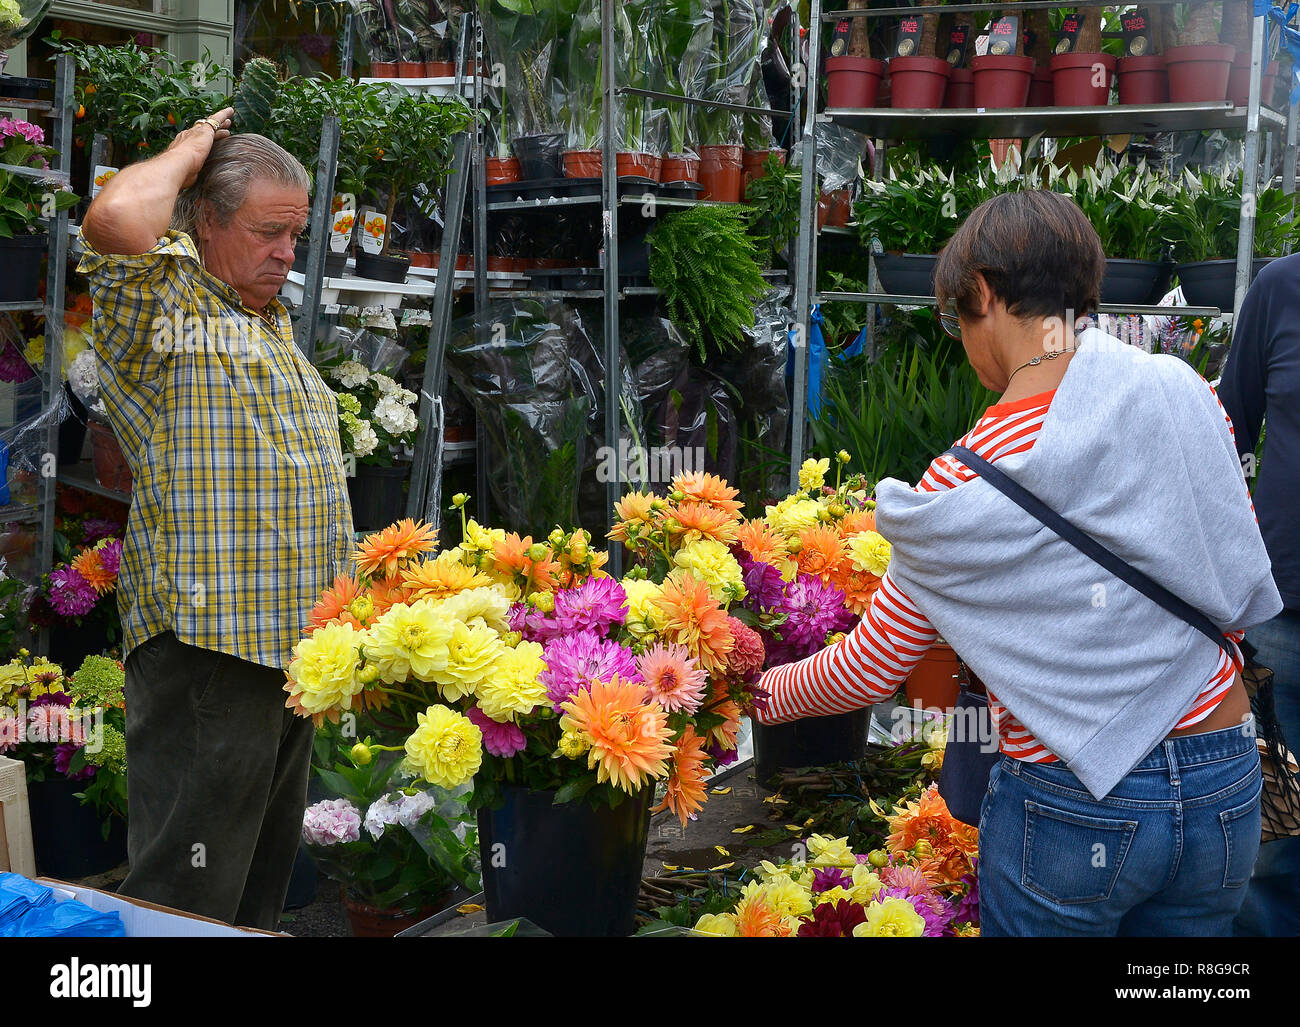 SUNDAY FLOWER MARKET, COLUMBIA ROAD, BETHNAL GREEN,TOWER HAMLETS, EAST LONDON. AUGUST 2018. The colourful Sunday morning street Flower Market Stock Photo